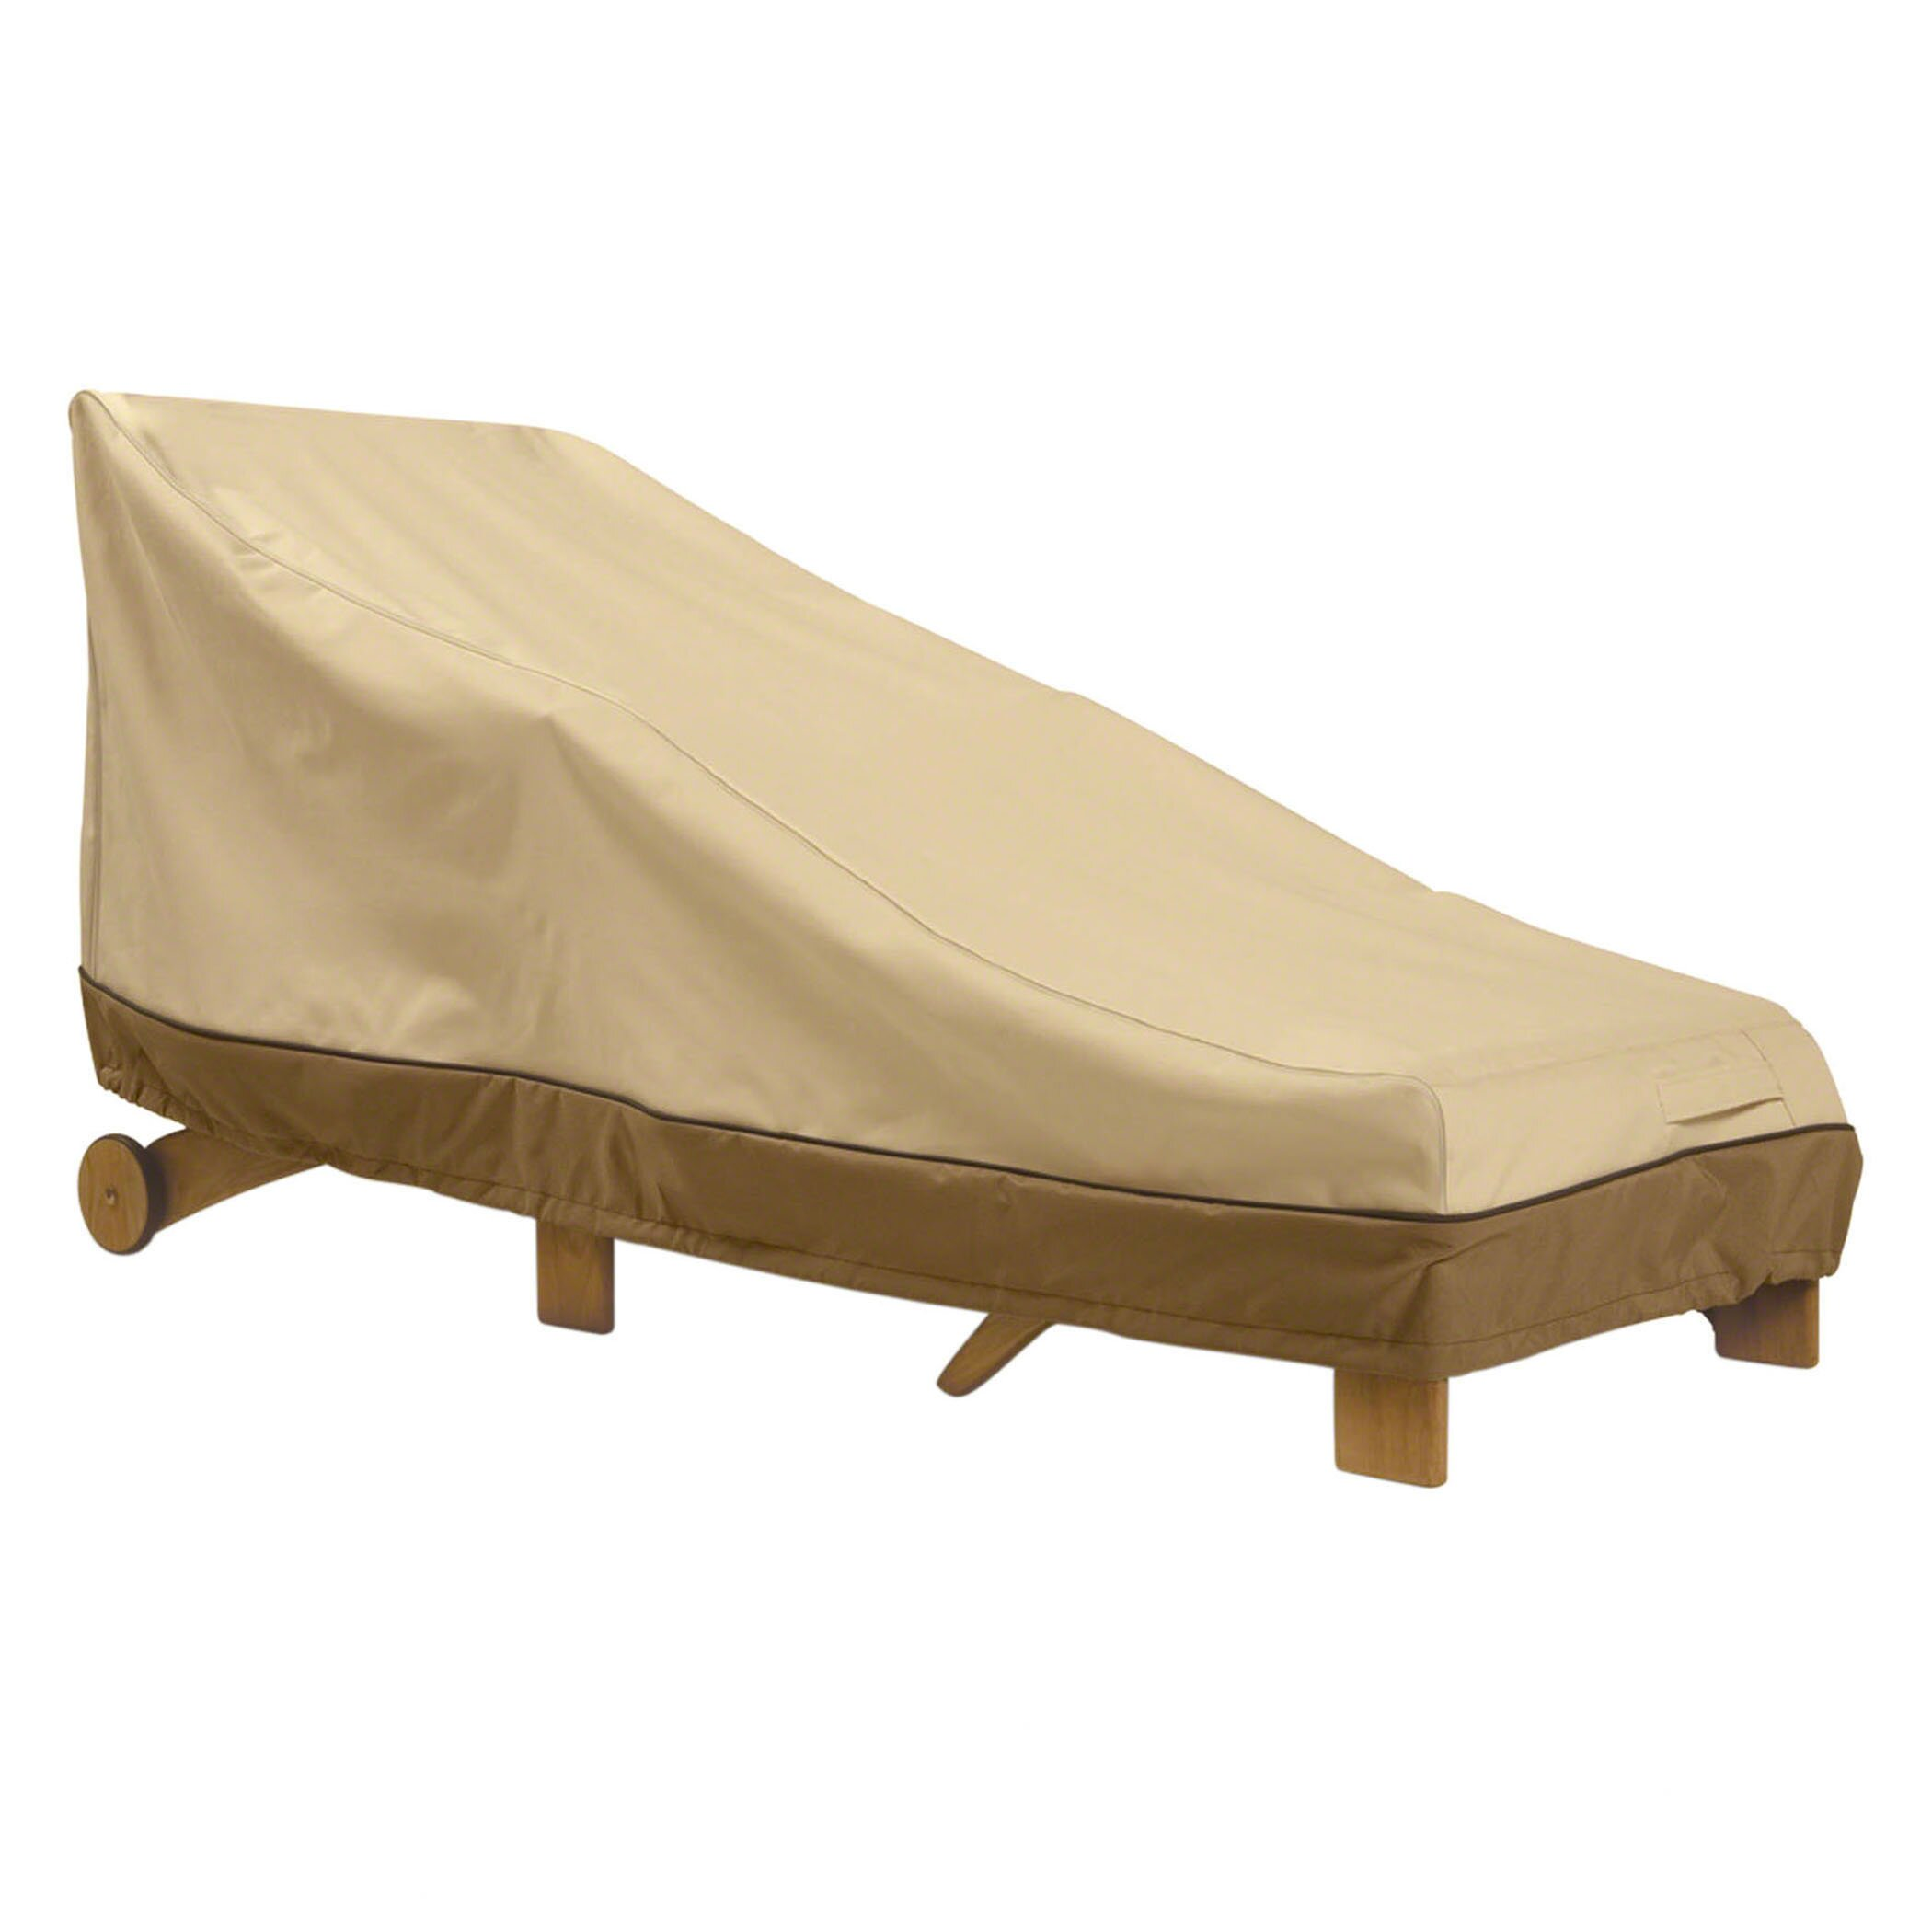 classic accessories chaise lounge cover reviews ForChaise Lounge Accessories